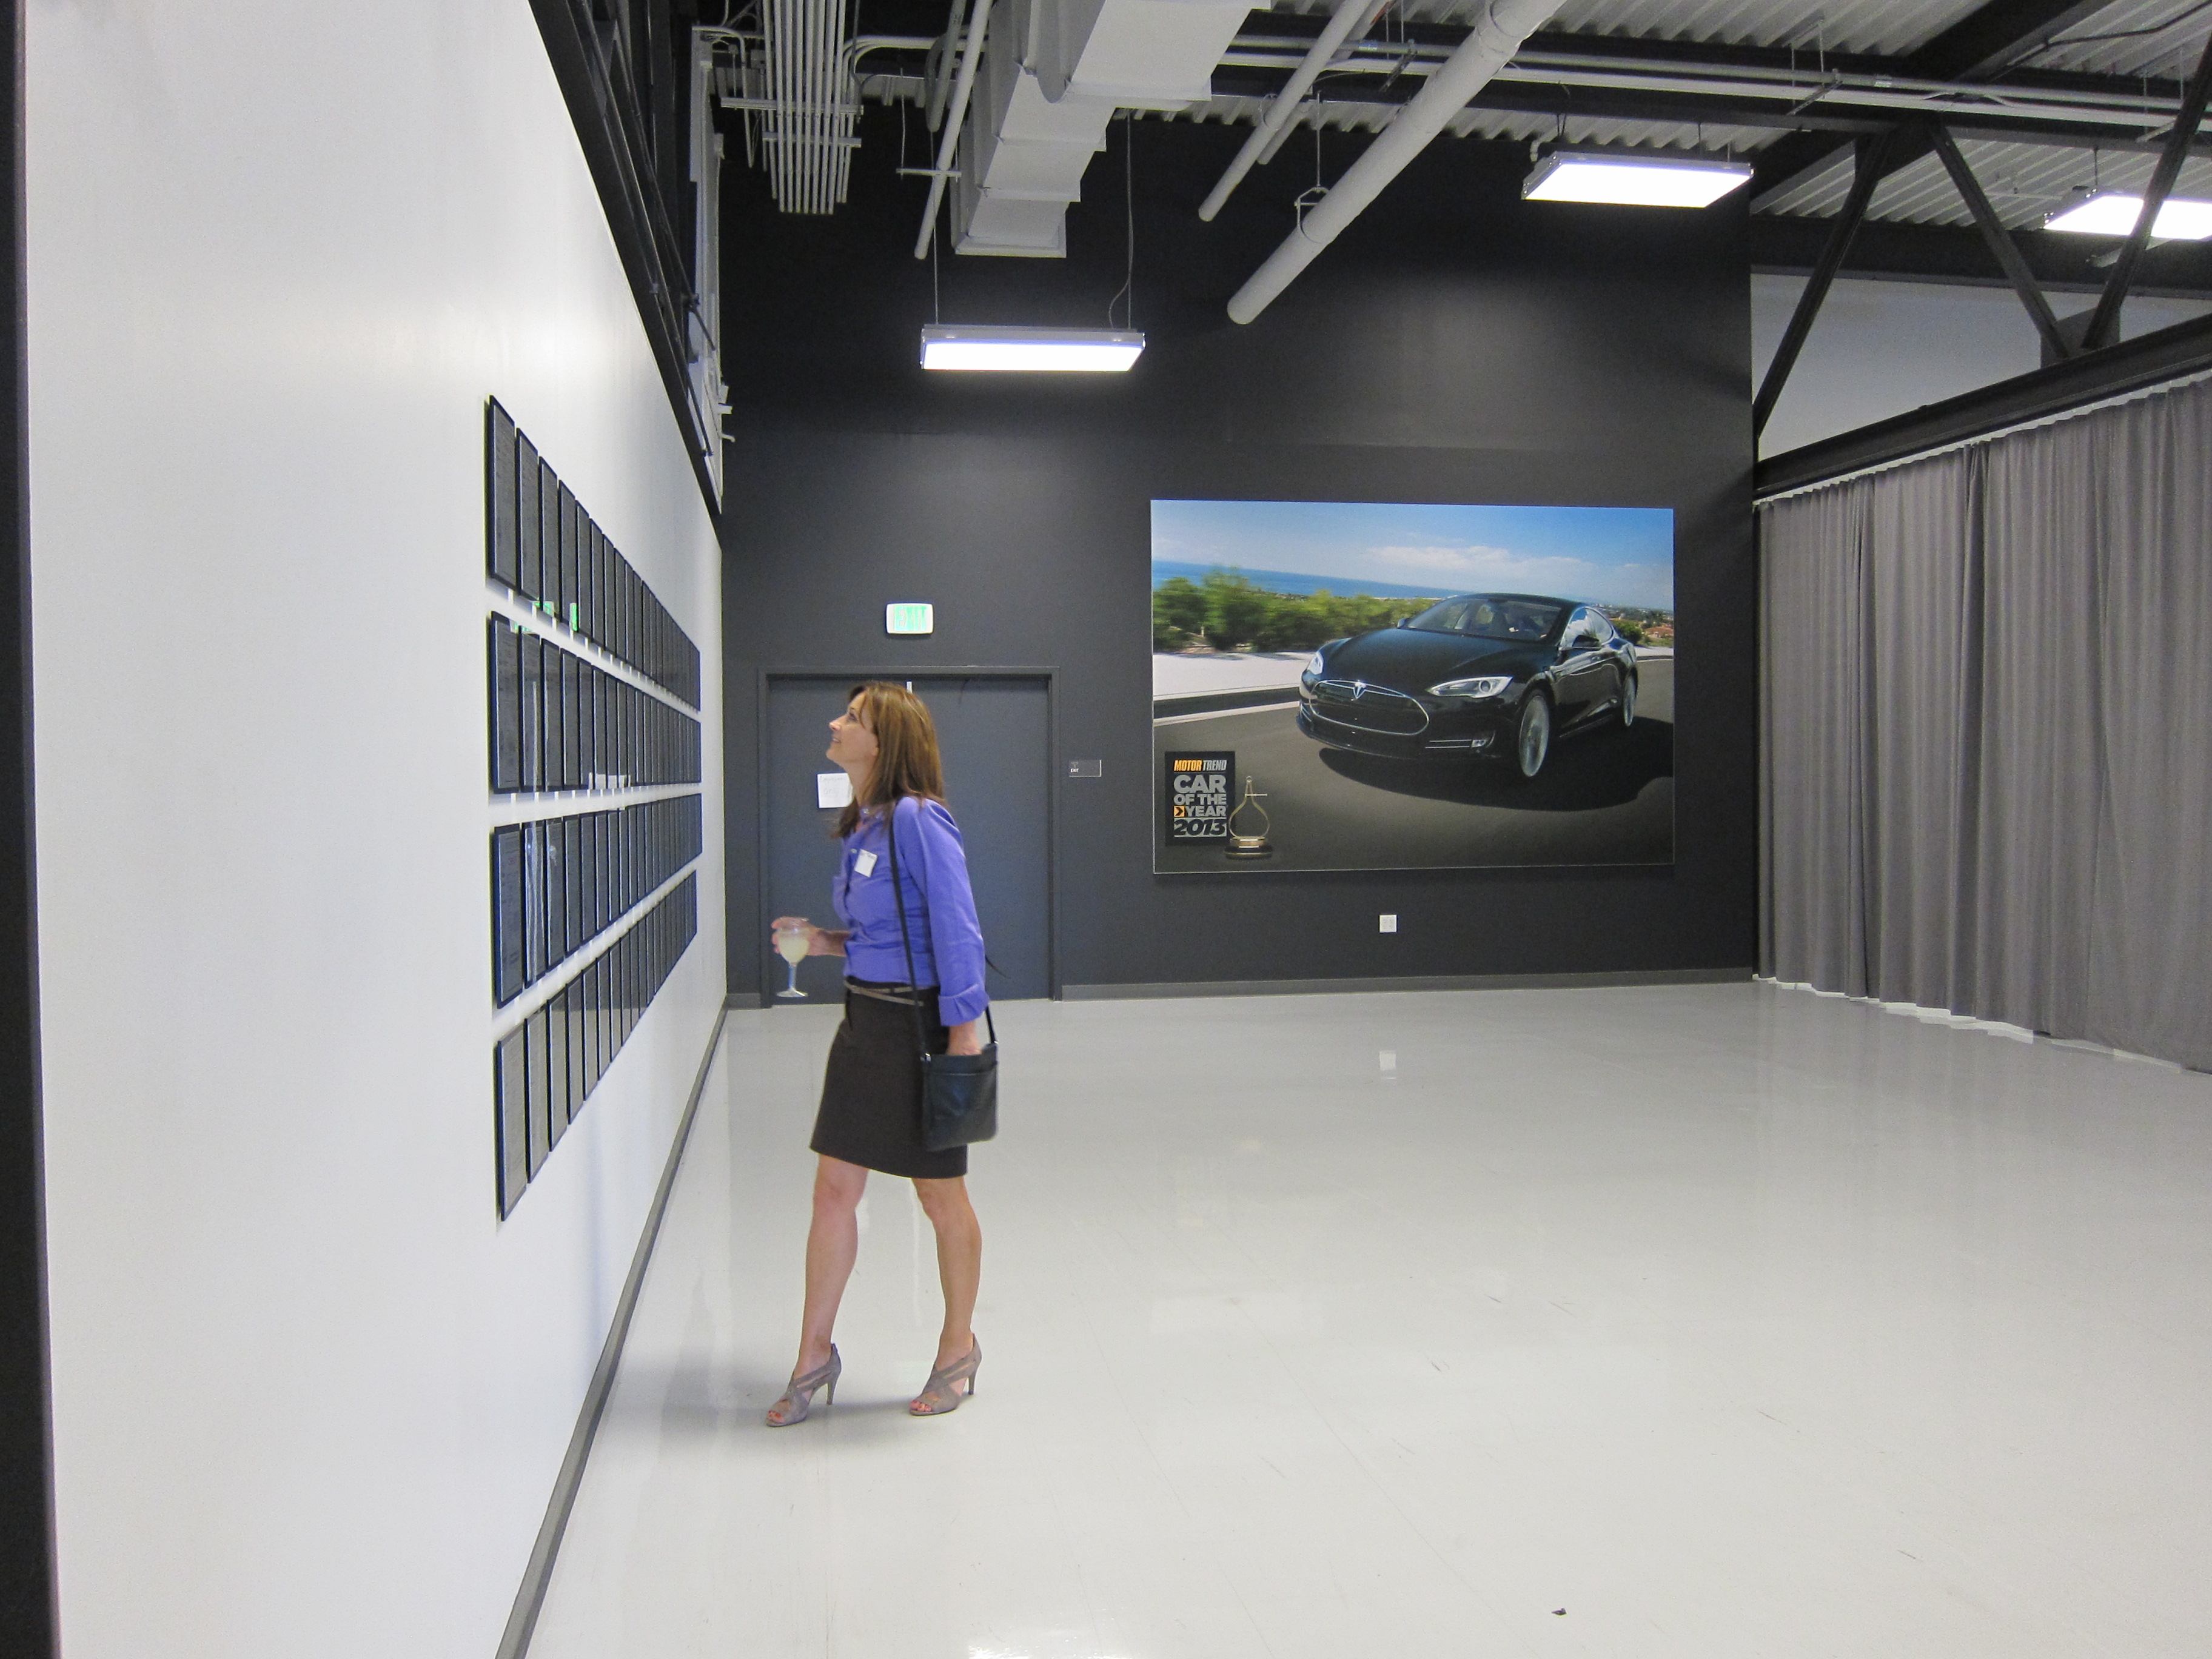 Cheryl Ryan inspects Tesla's patent wall at Tesla HQ, Fresh Dialogues interviews